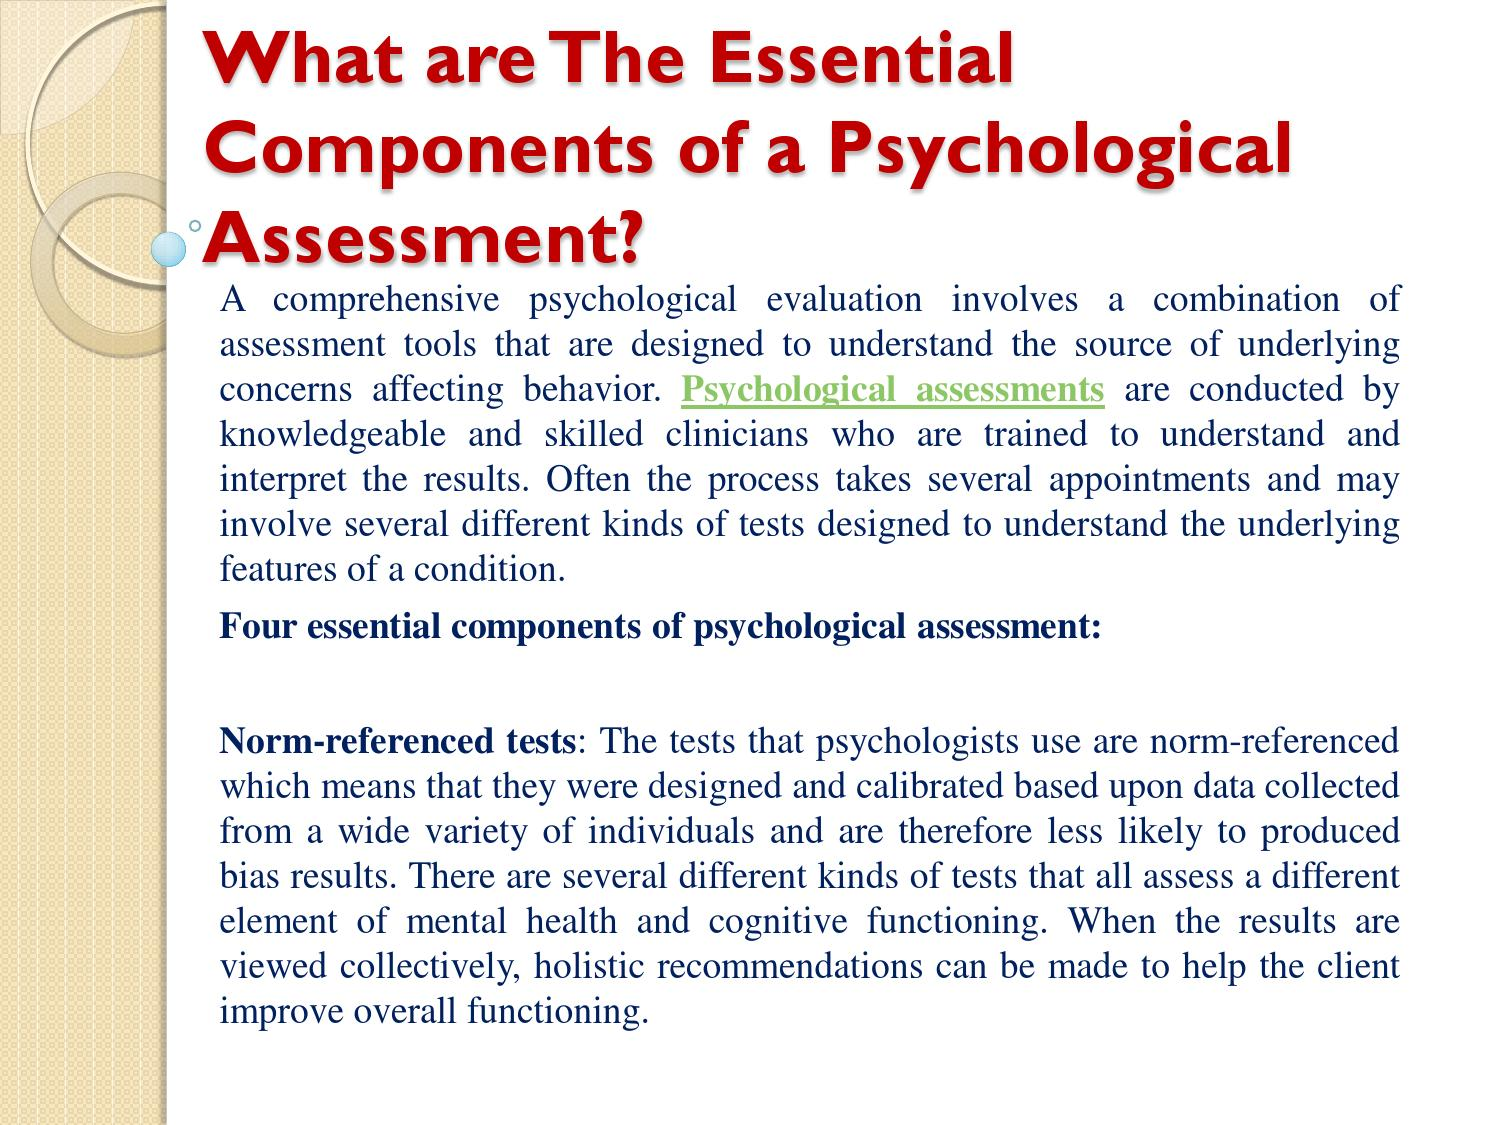 What are The Essential Components of a Psychological